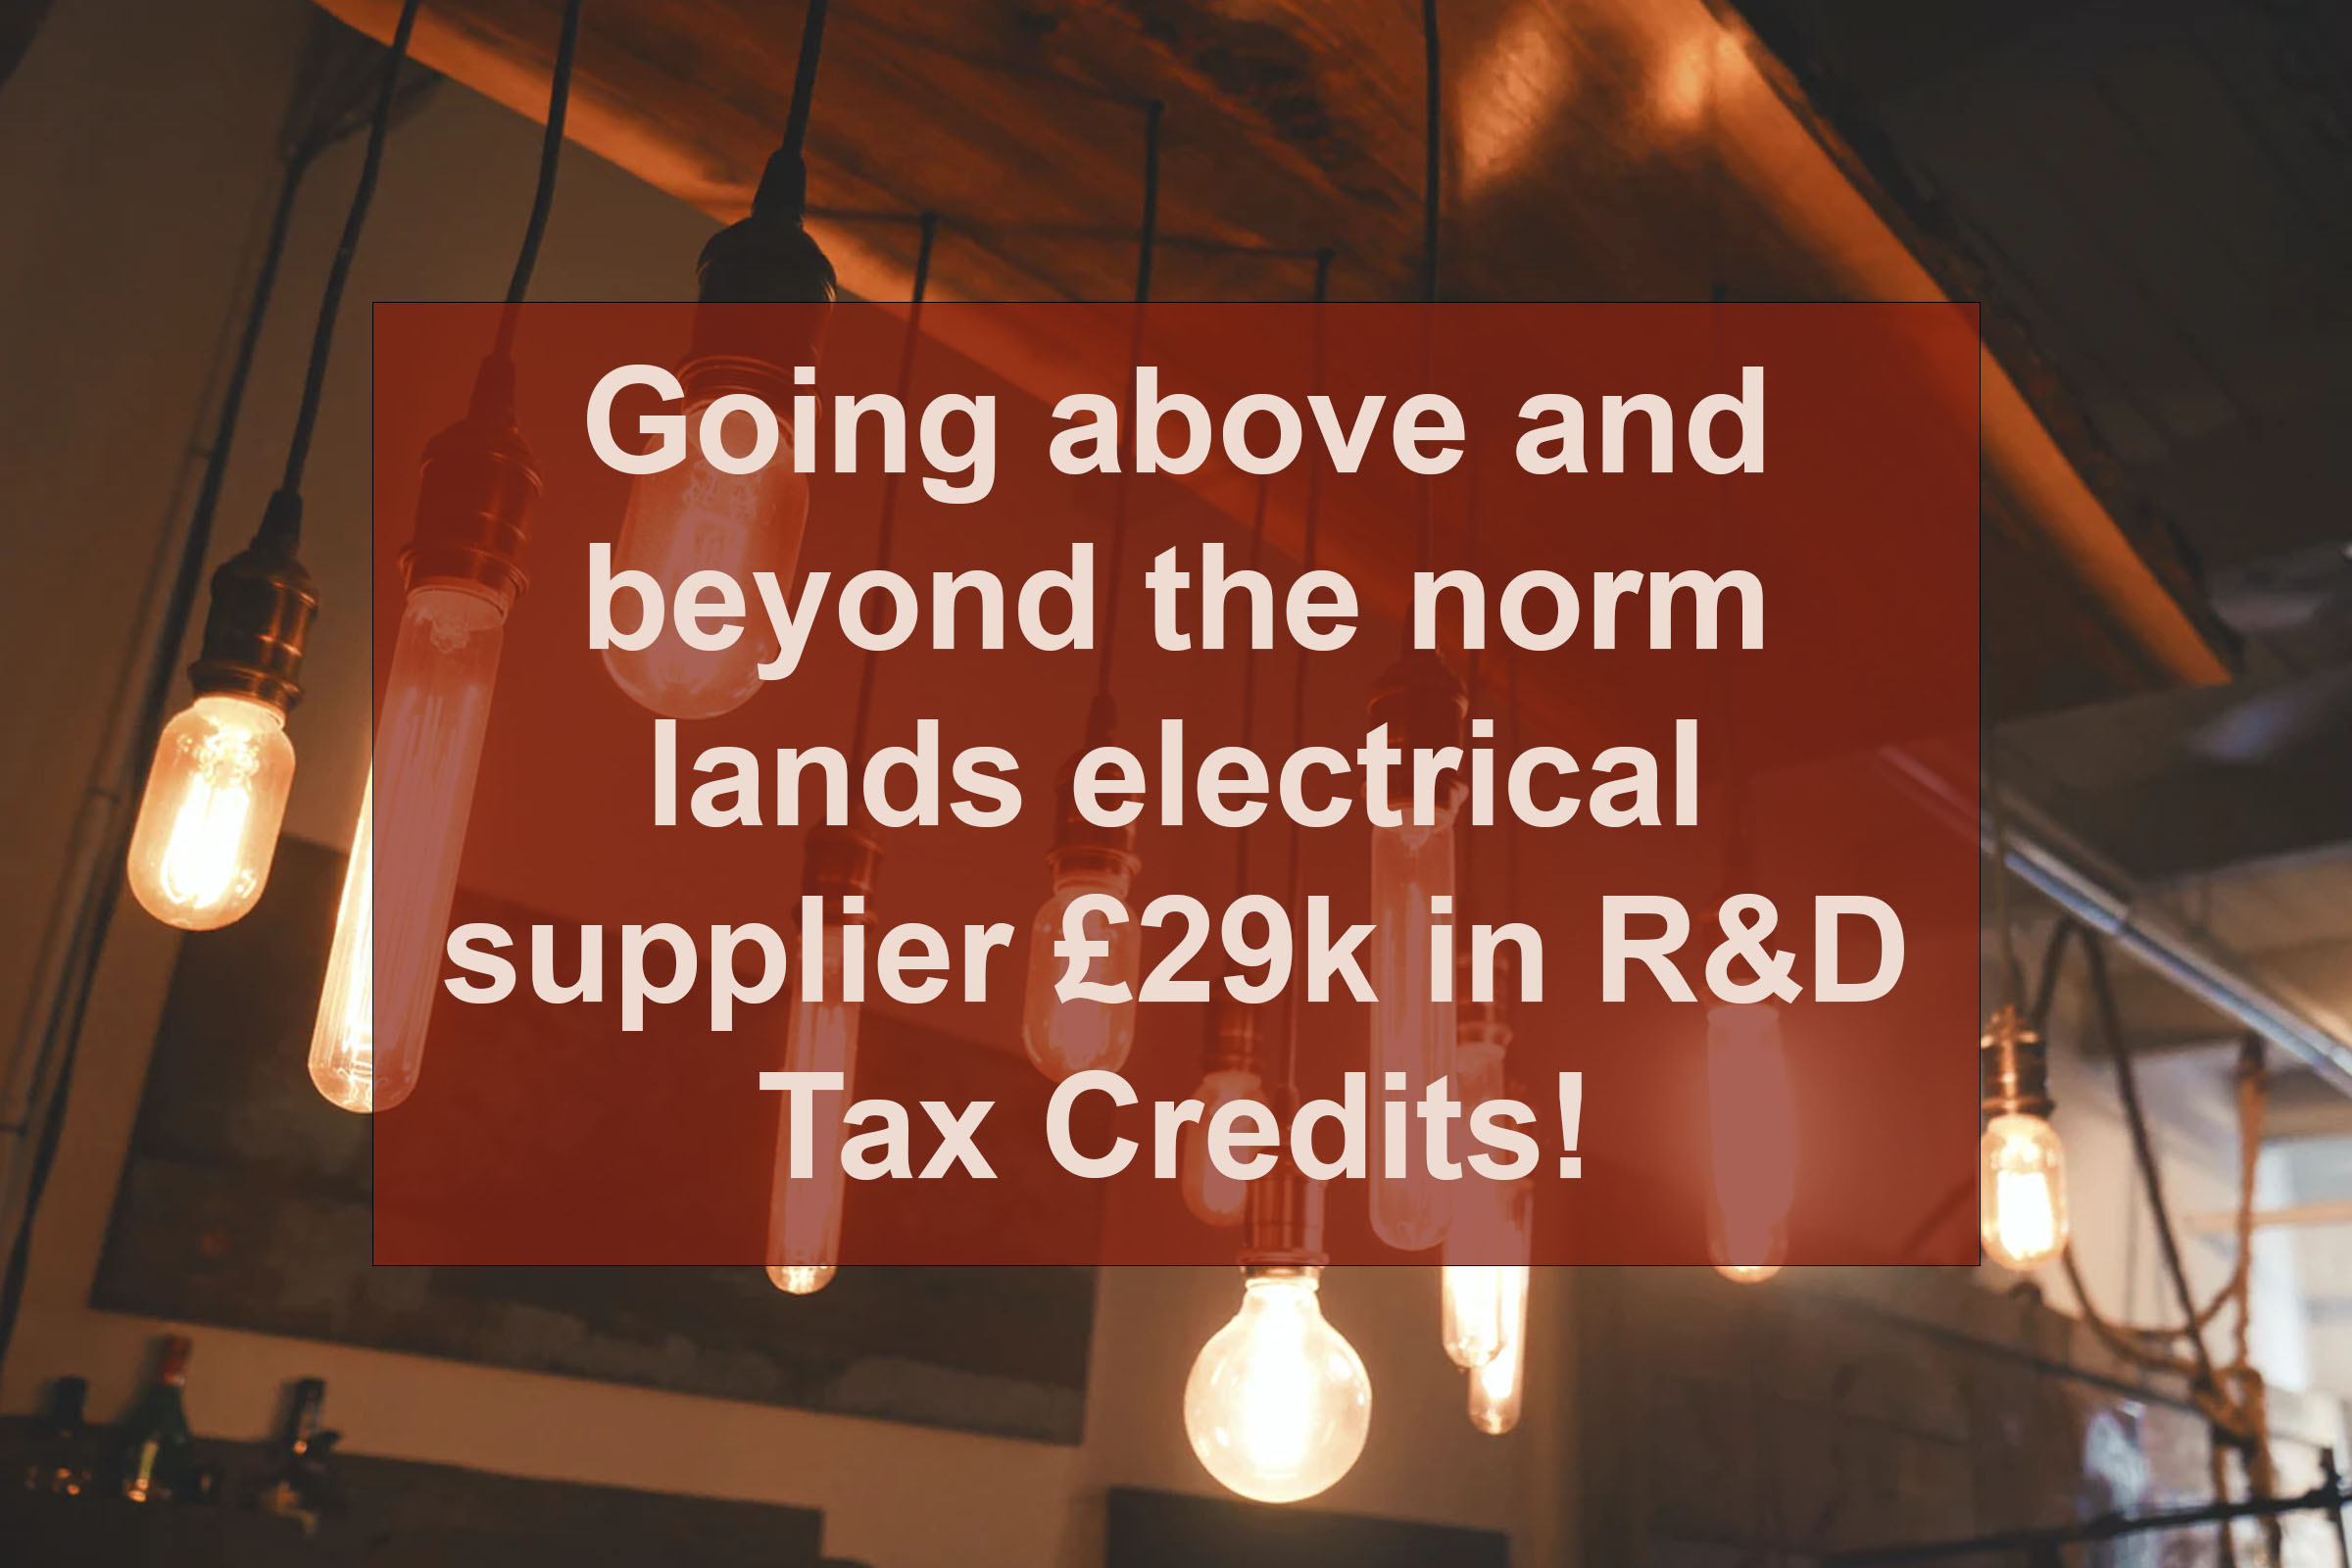 Going above and beyond the norm lands electrical supplier £29k in R&D Tax Credits